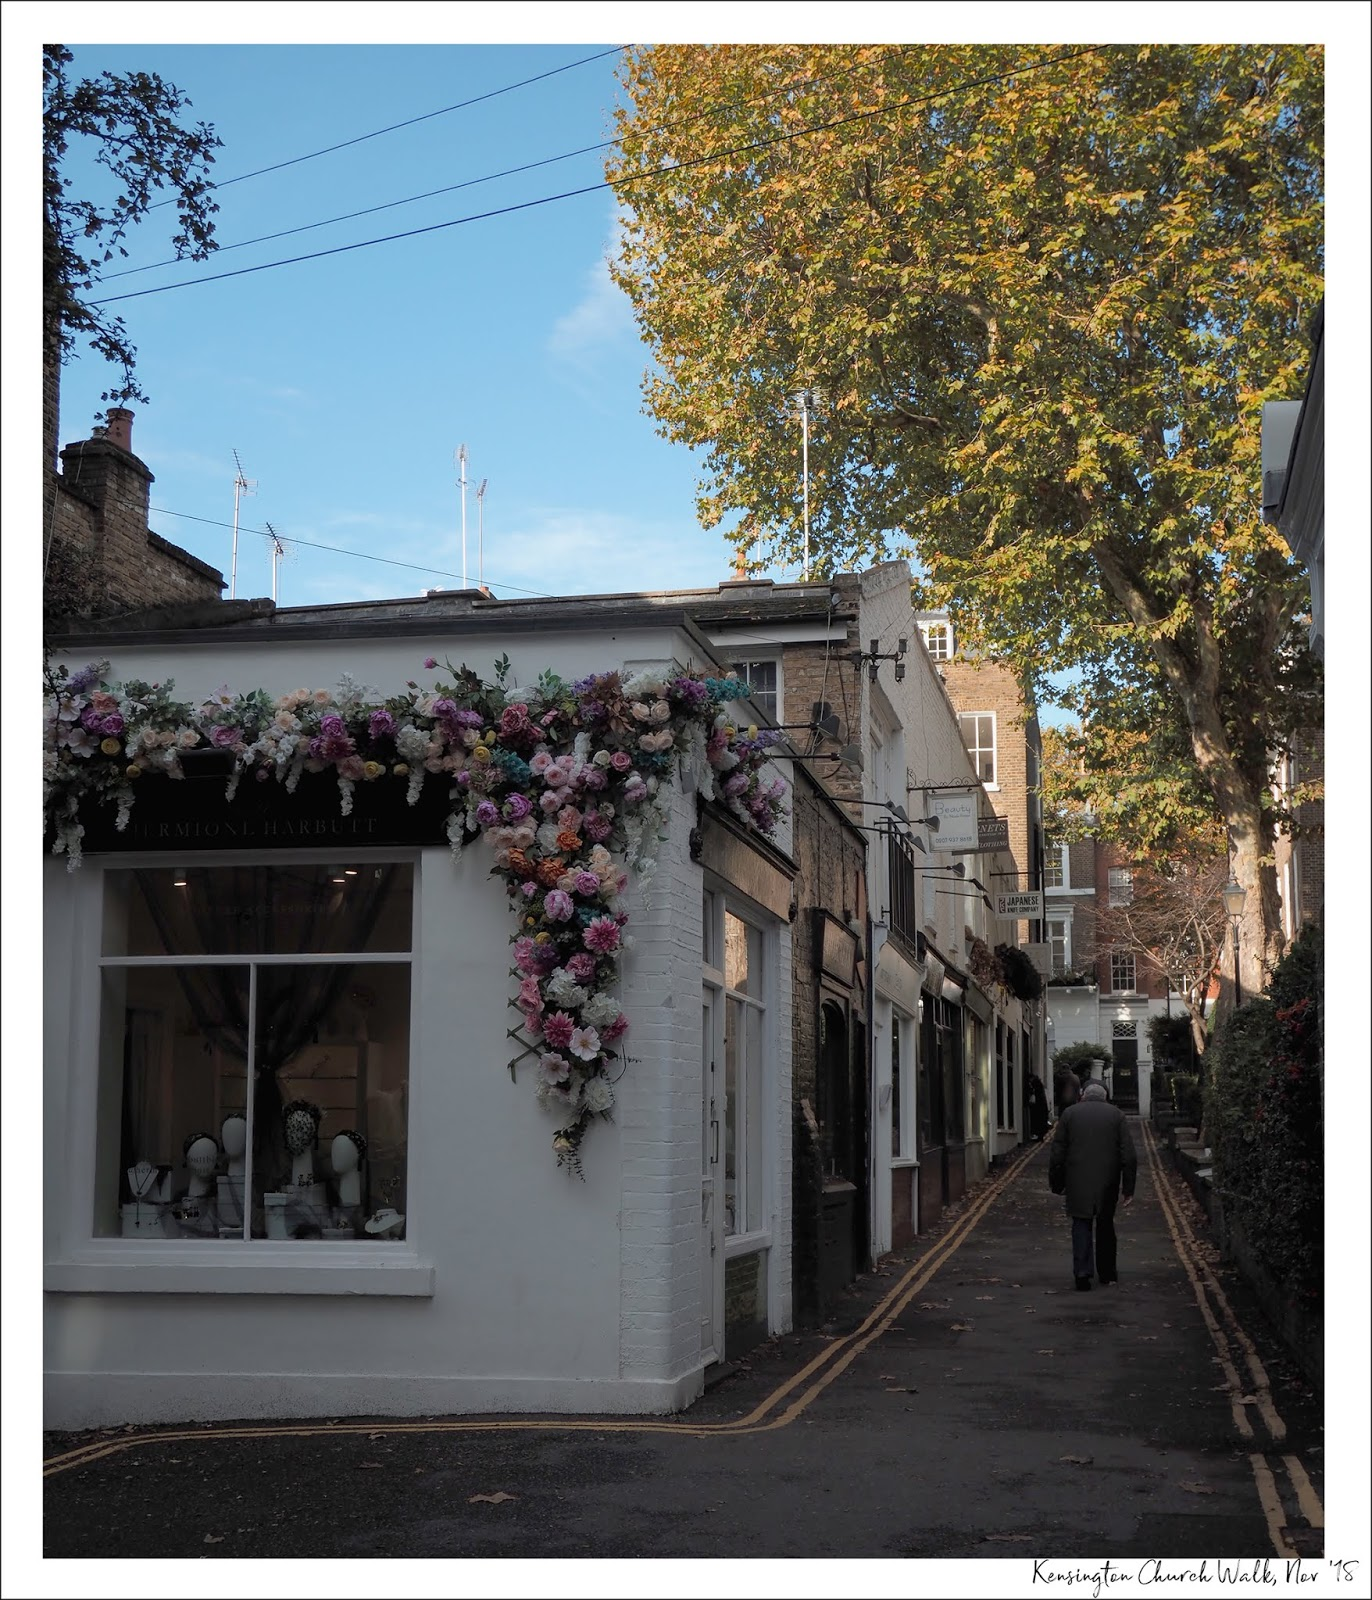 Euriental | luxury travel & style | an afternoon in Kensington, London